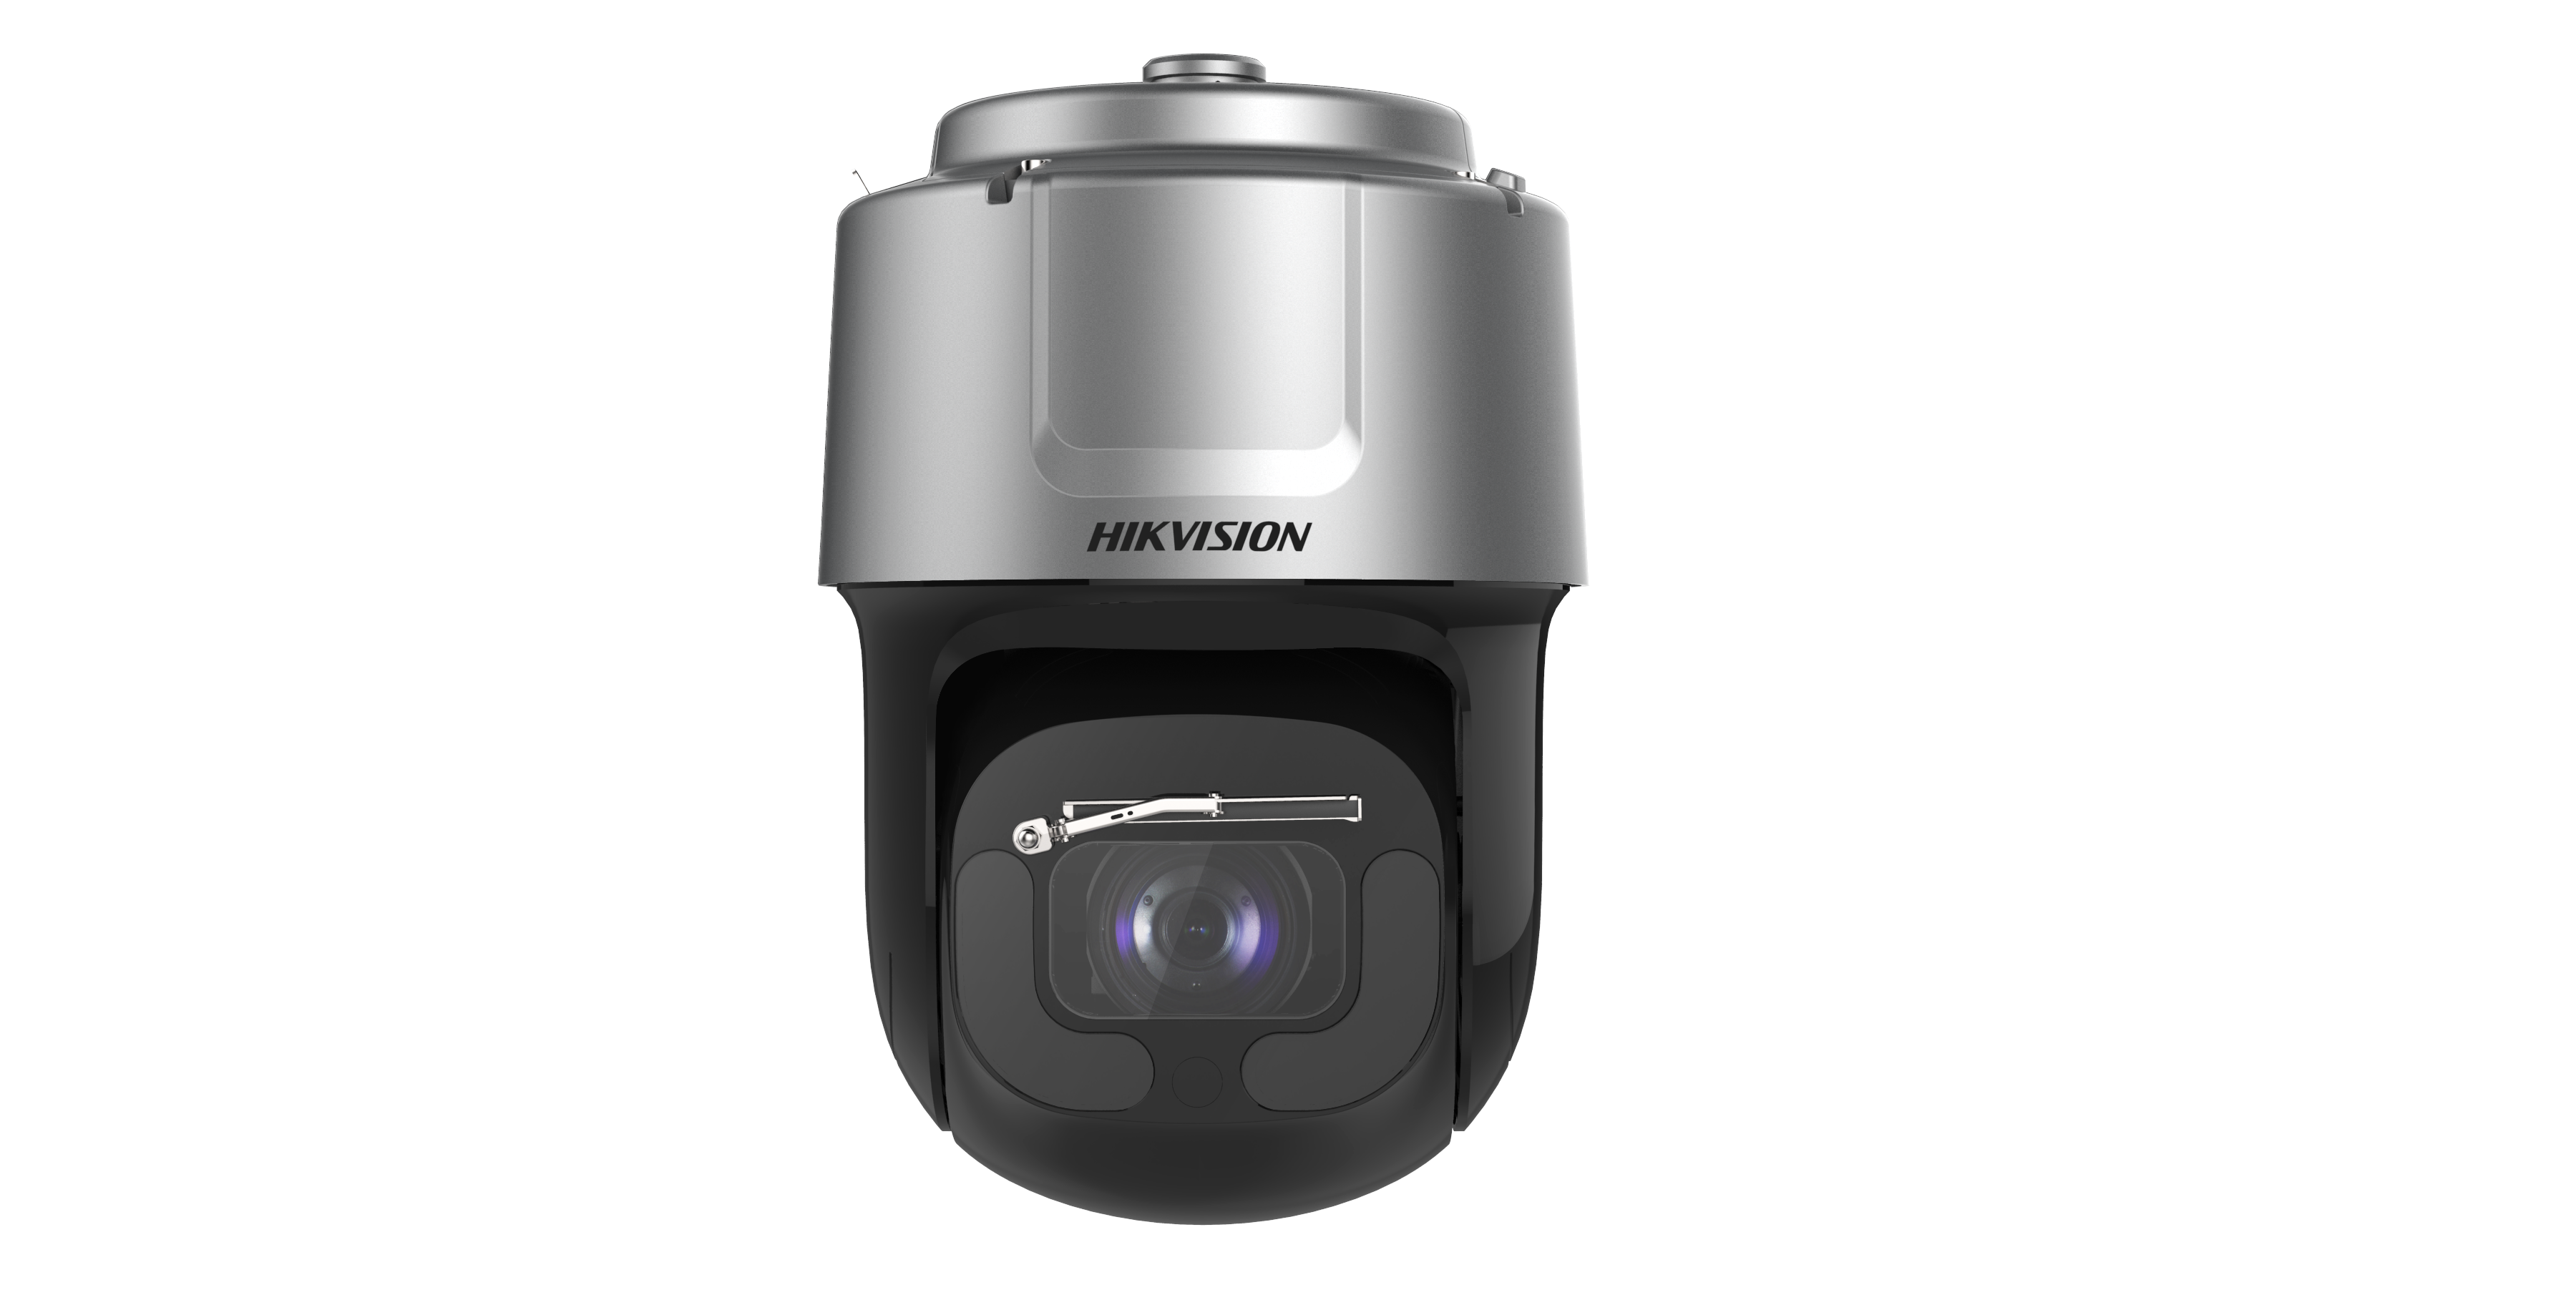 Hikvision DS-2DF9C435IH-DLW 4MP Low Light DarkFighterX  35X 250M IR Dual-Sensor Deep Learning Auto-Tracking Network PTZ Camera